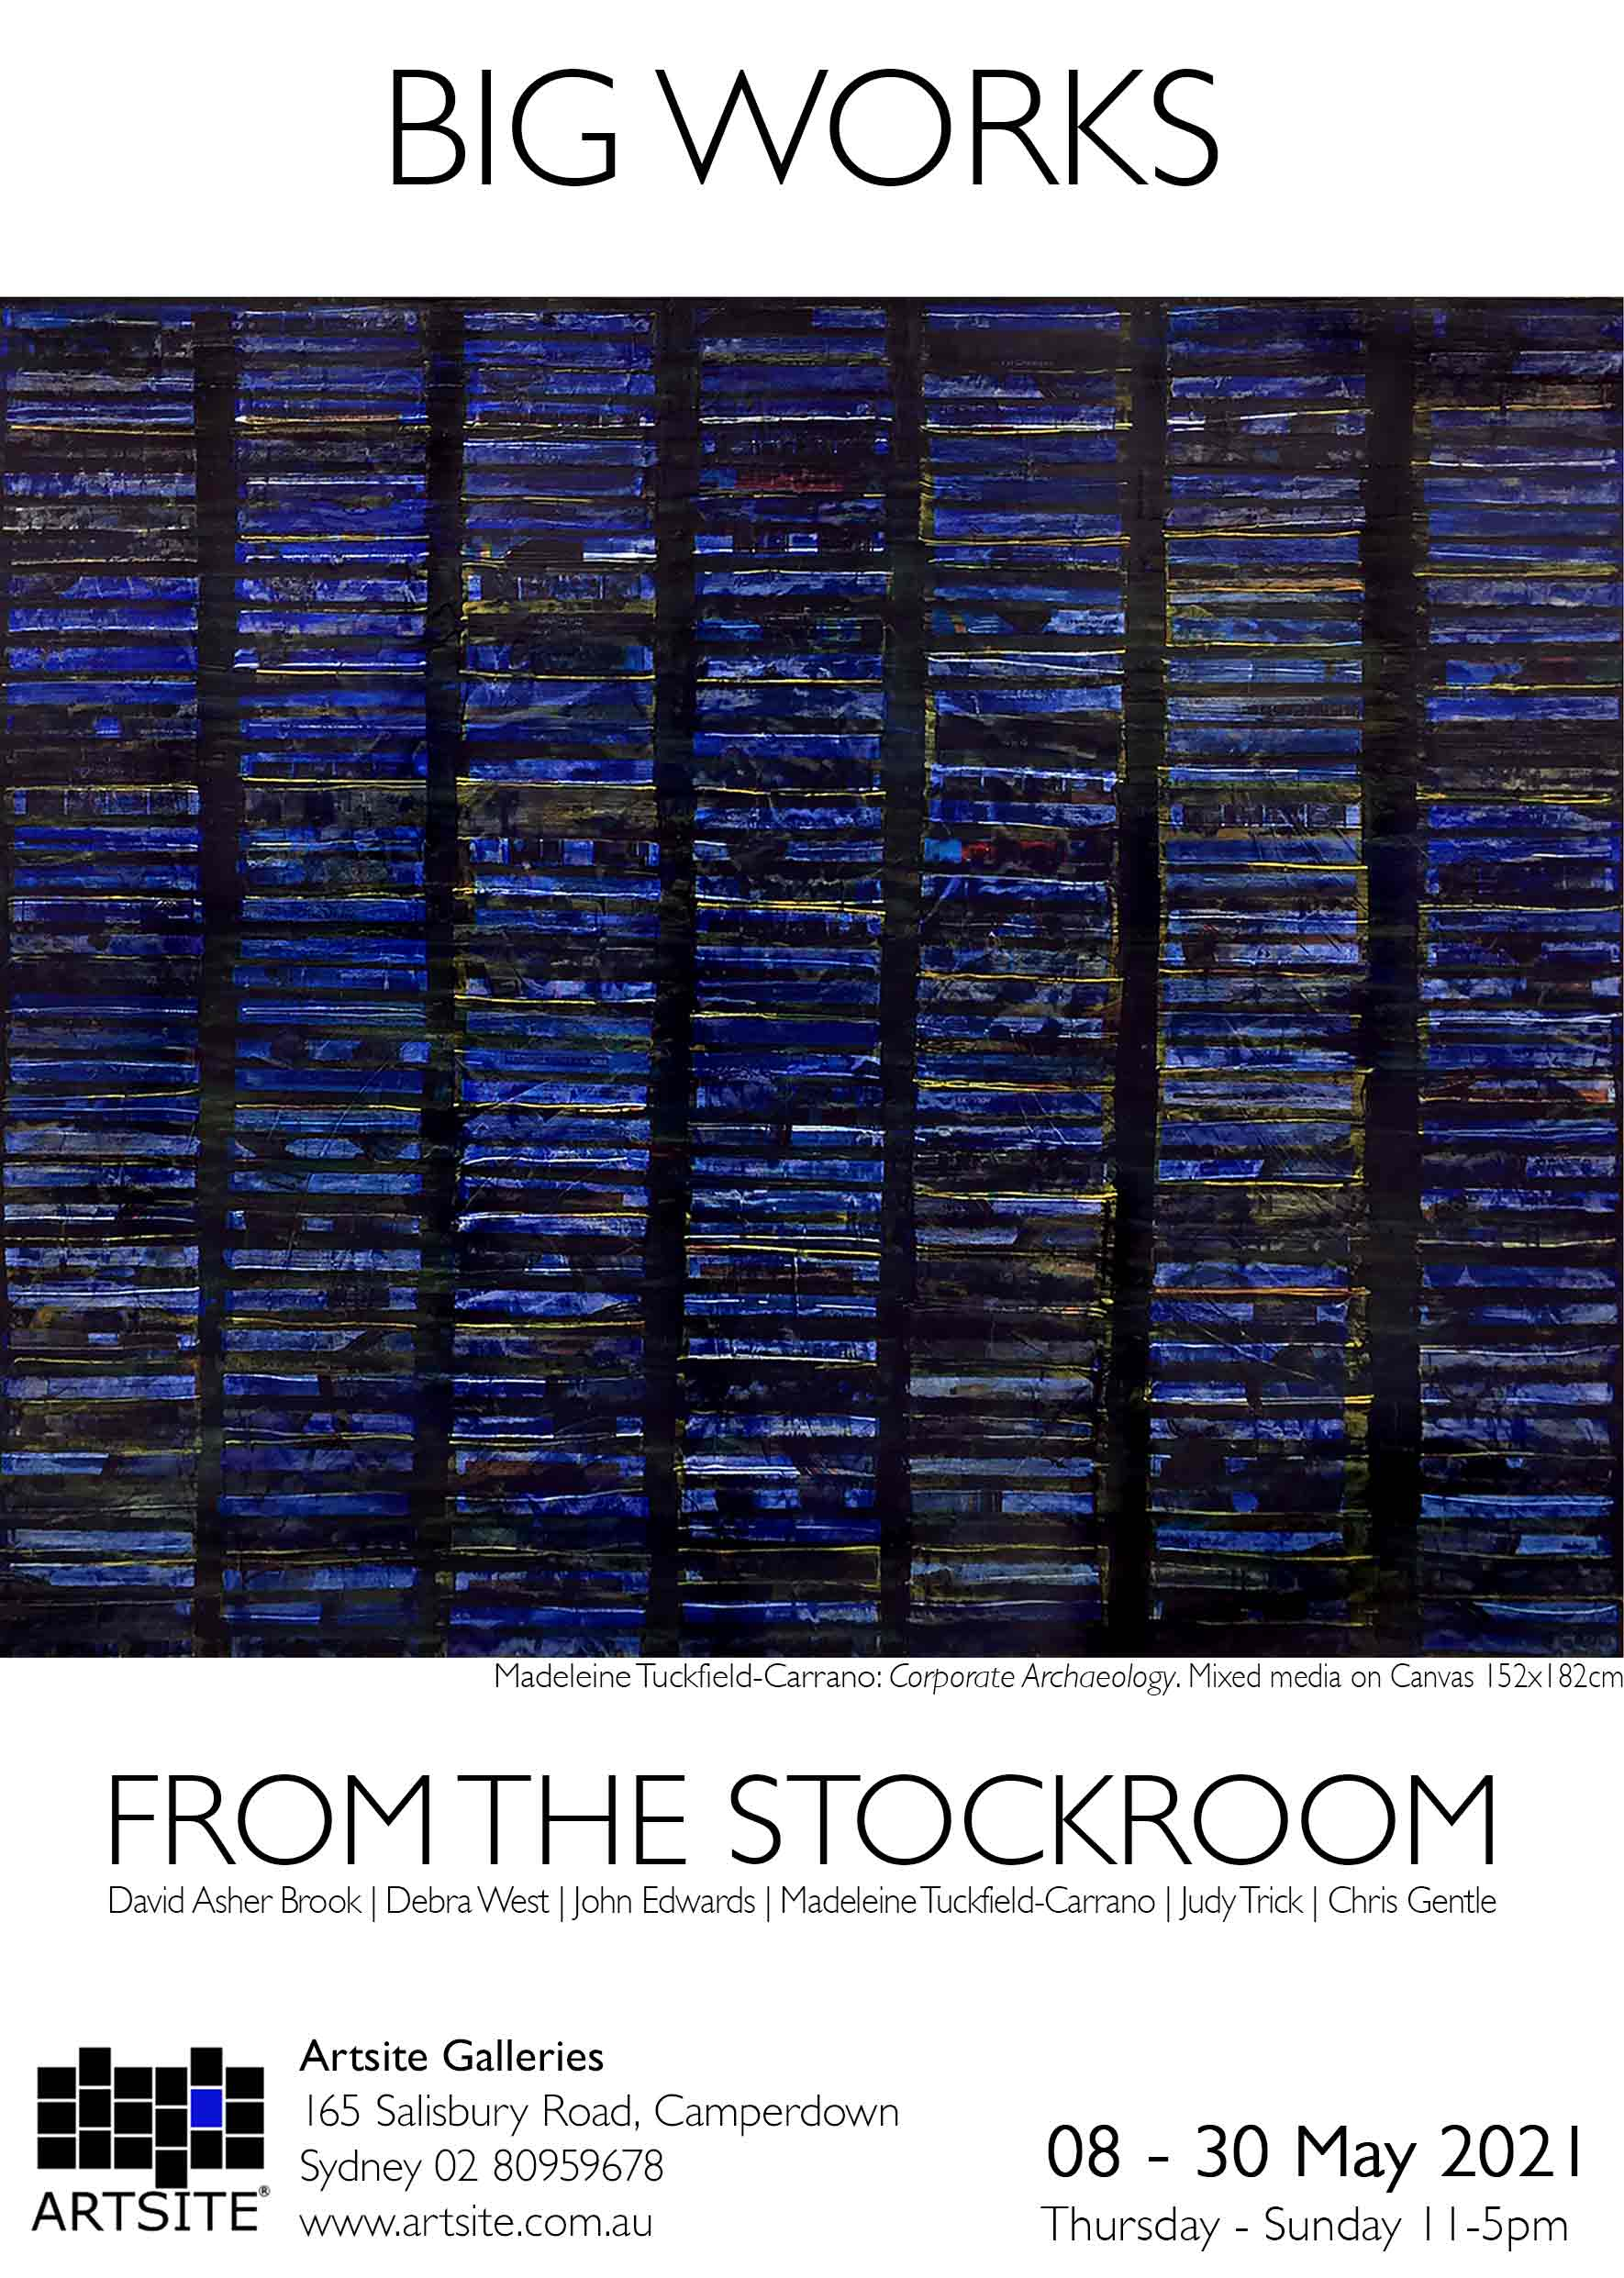 Artsite Galleries | BIG Works from the Stockroom | Gallery_2| Thursday - Sunday 11-5pm | 08 -30  May 2021.